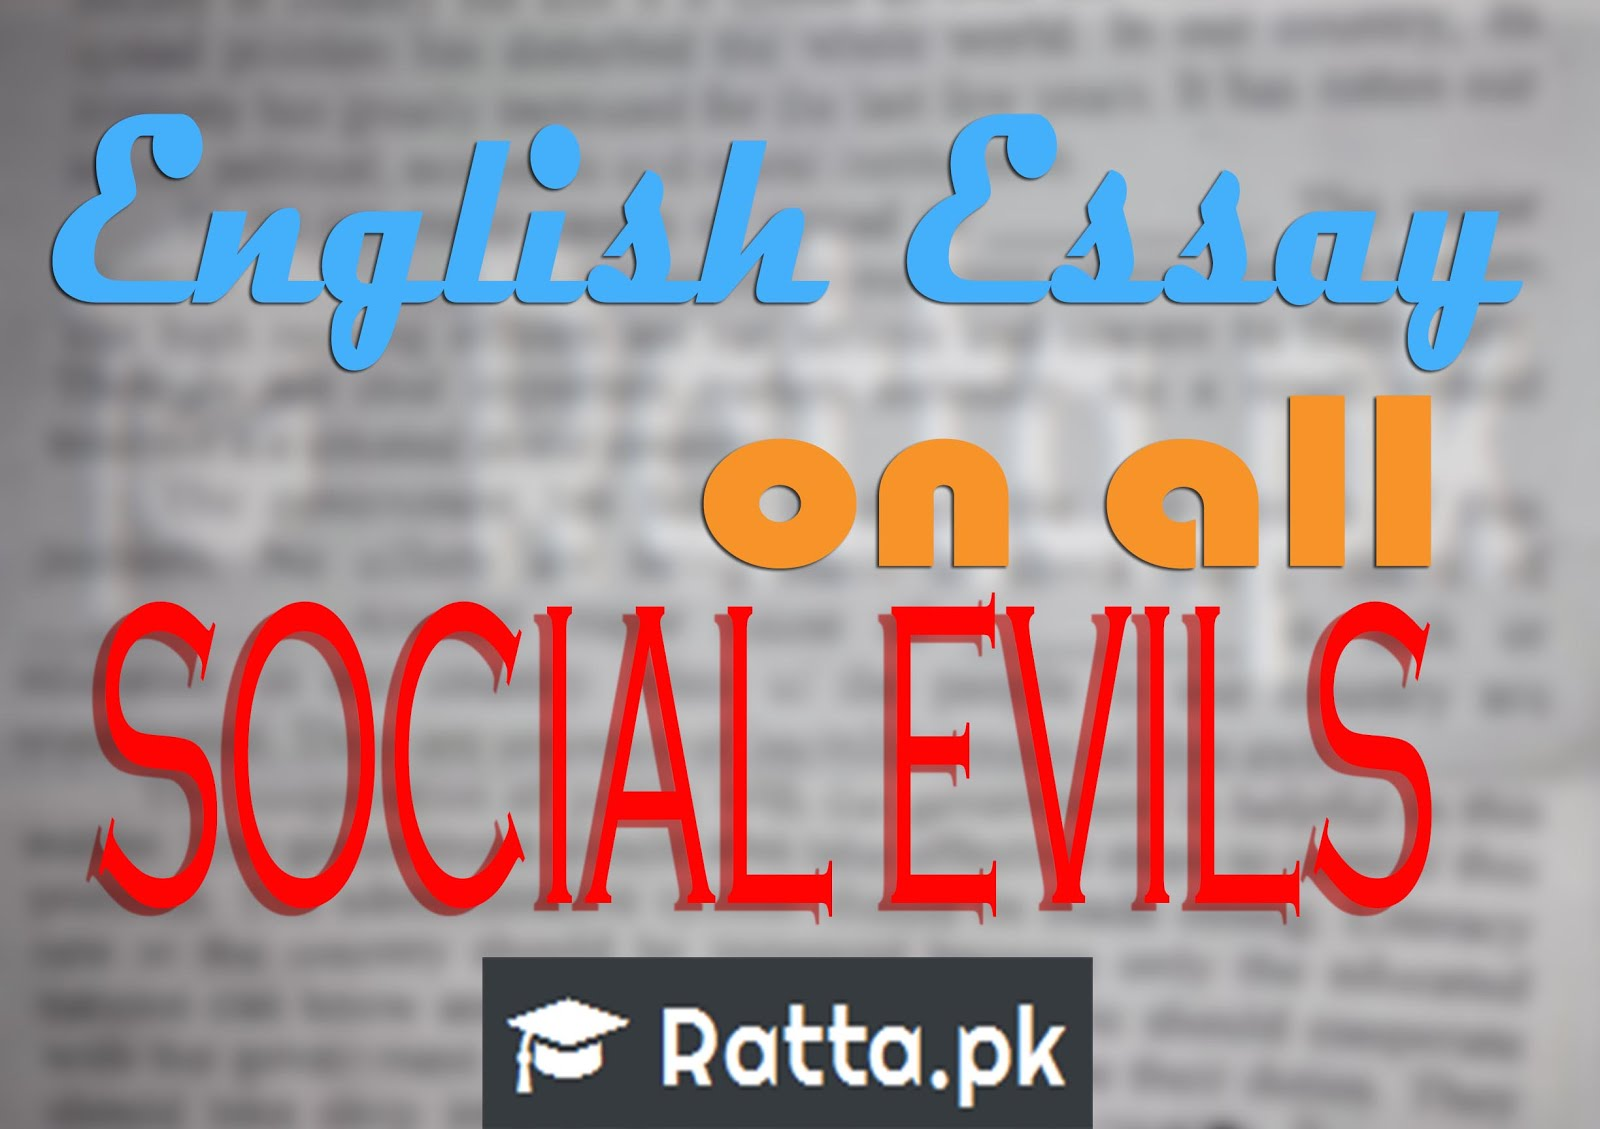 english essay on many multiple social evils topics inter